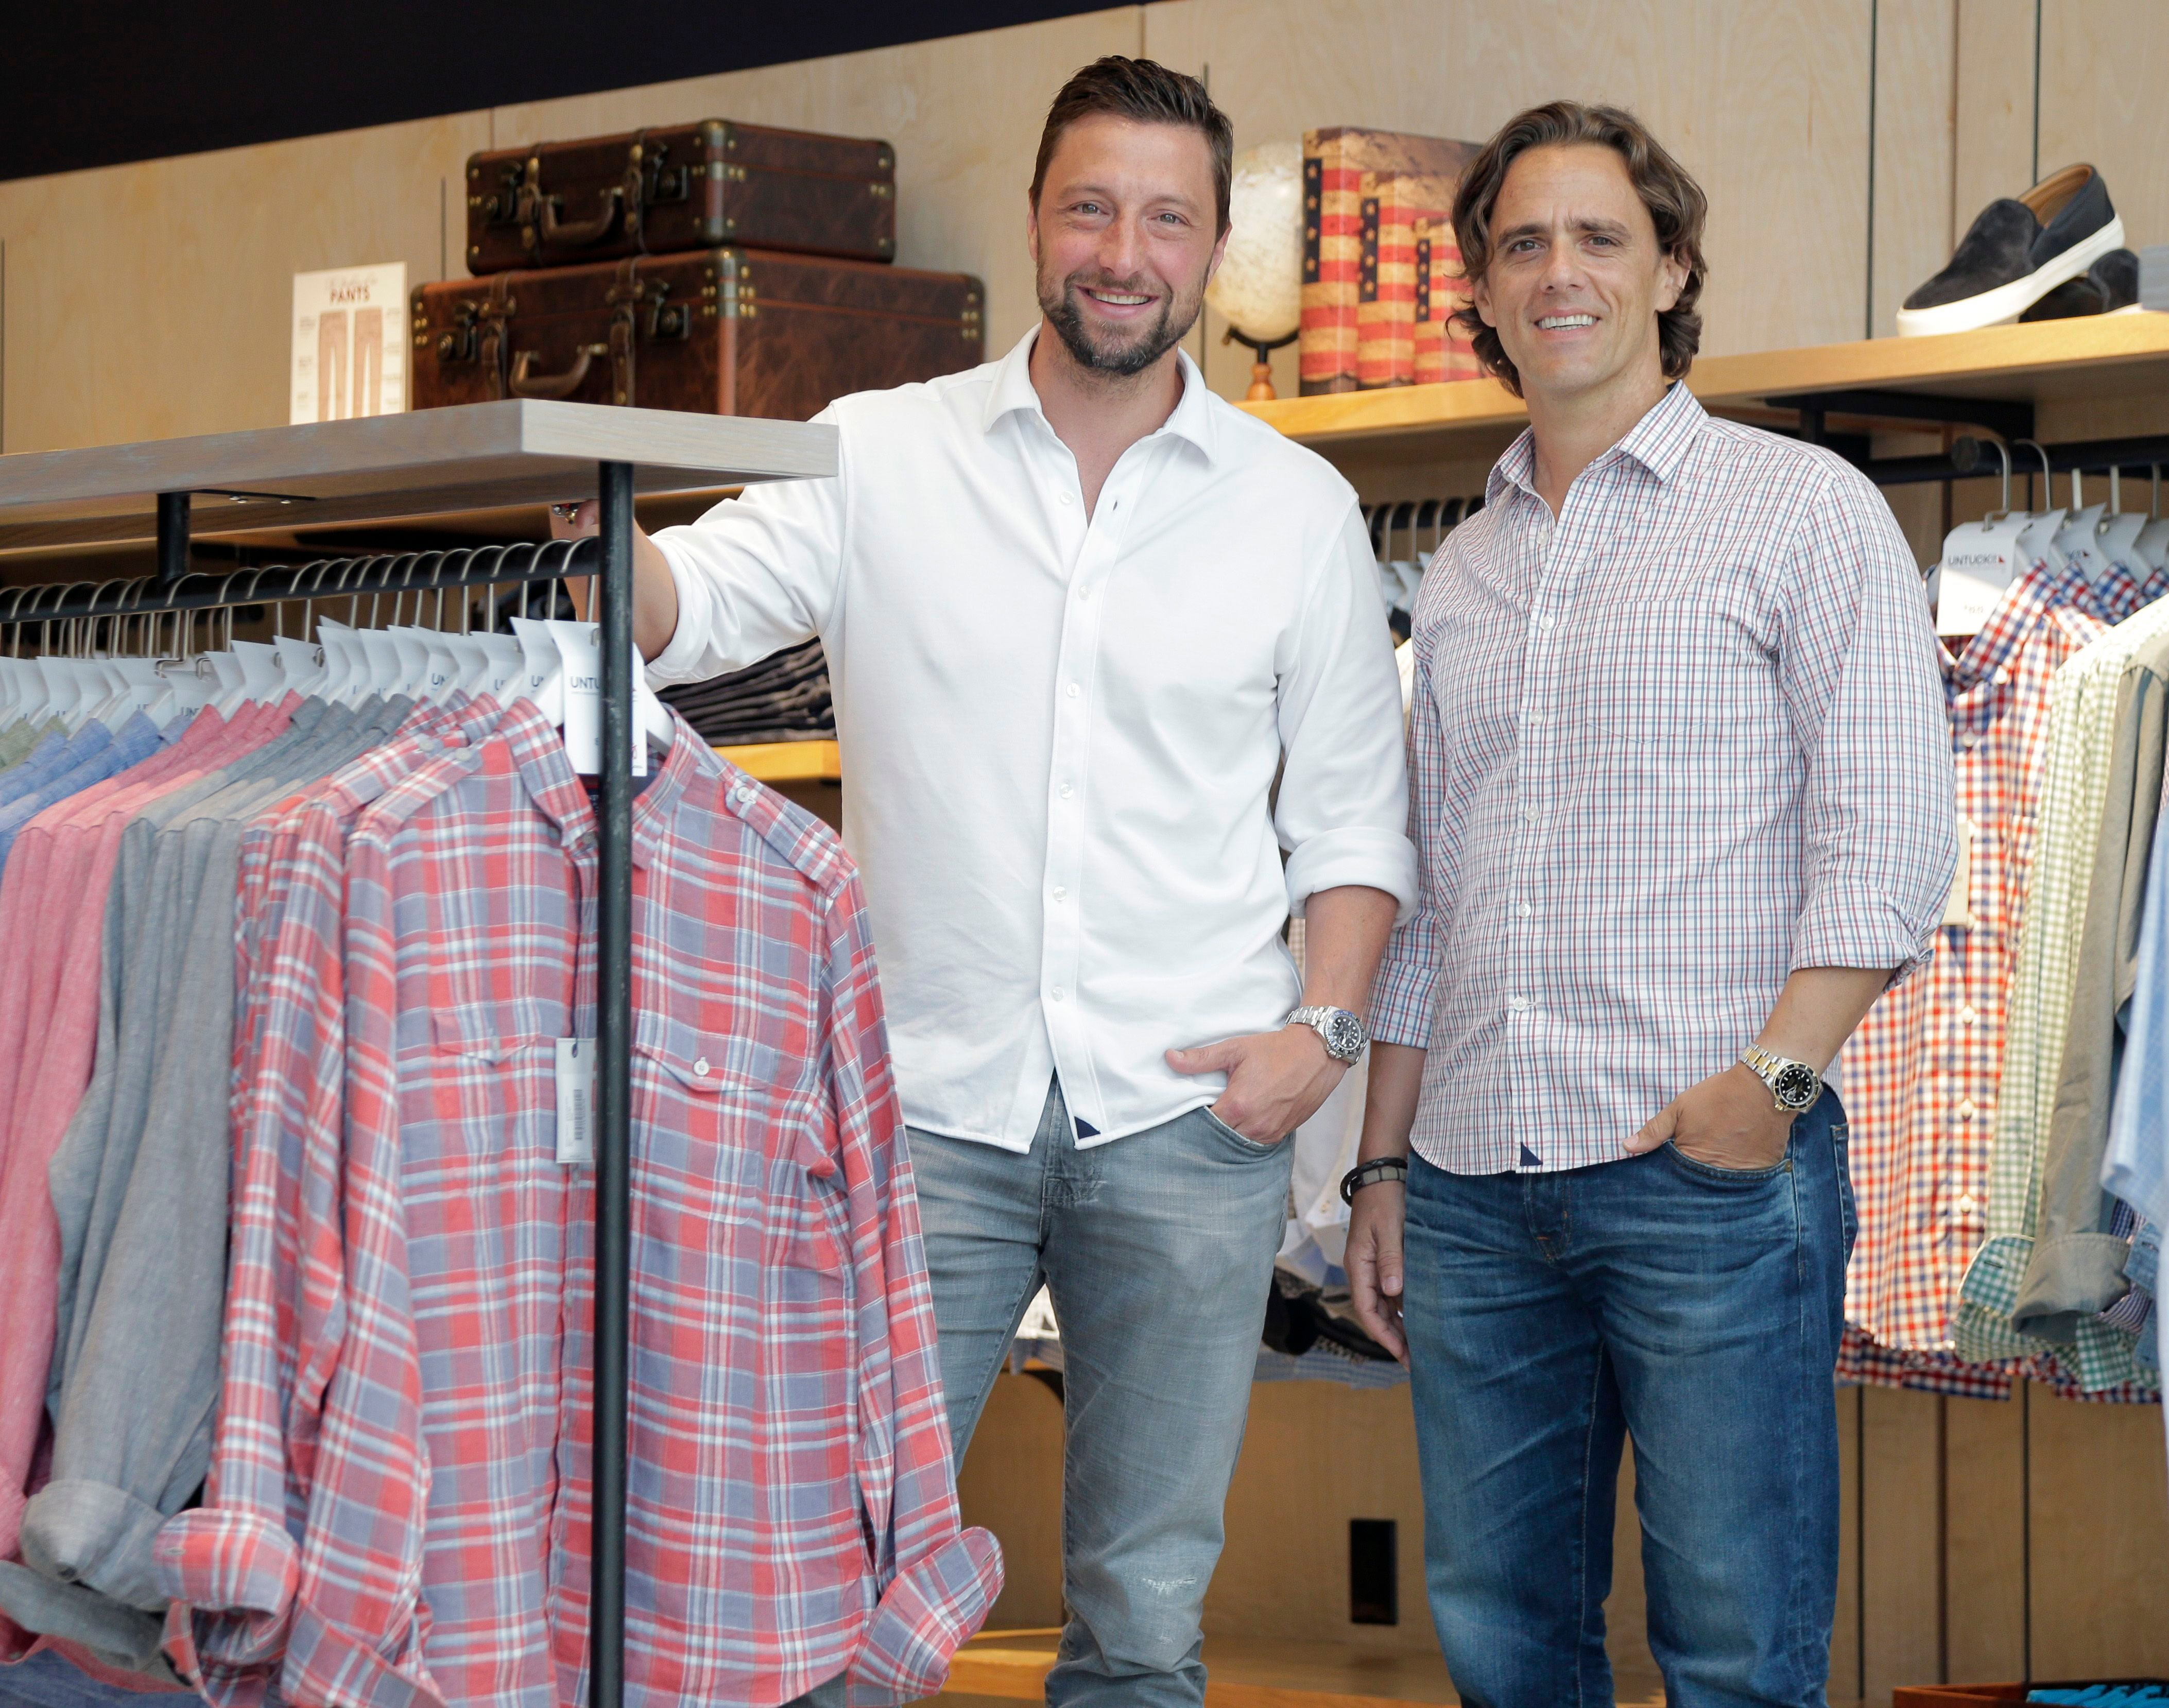 Chris Riccobono and Aaron Sanandres of Untuckit..